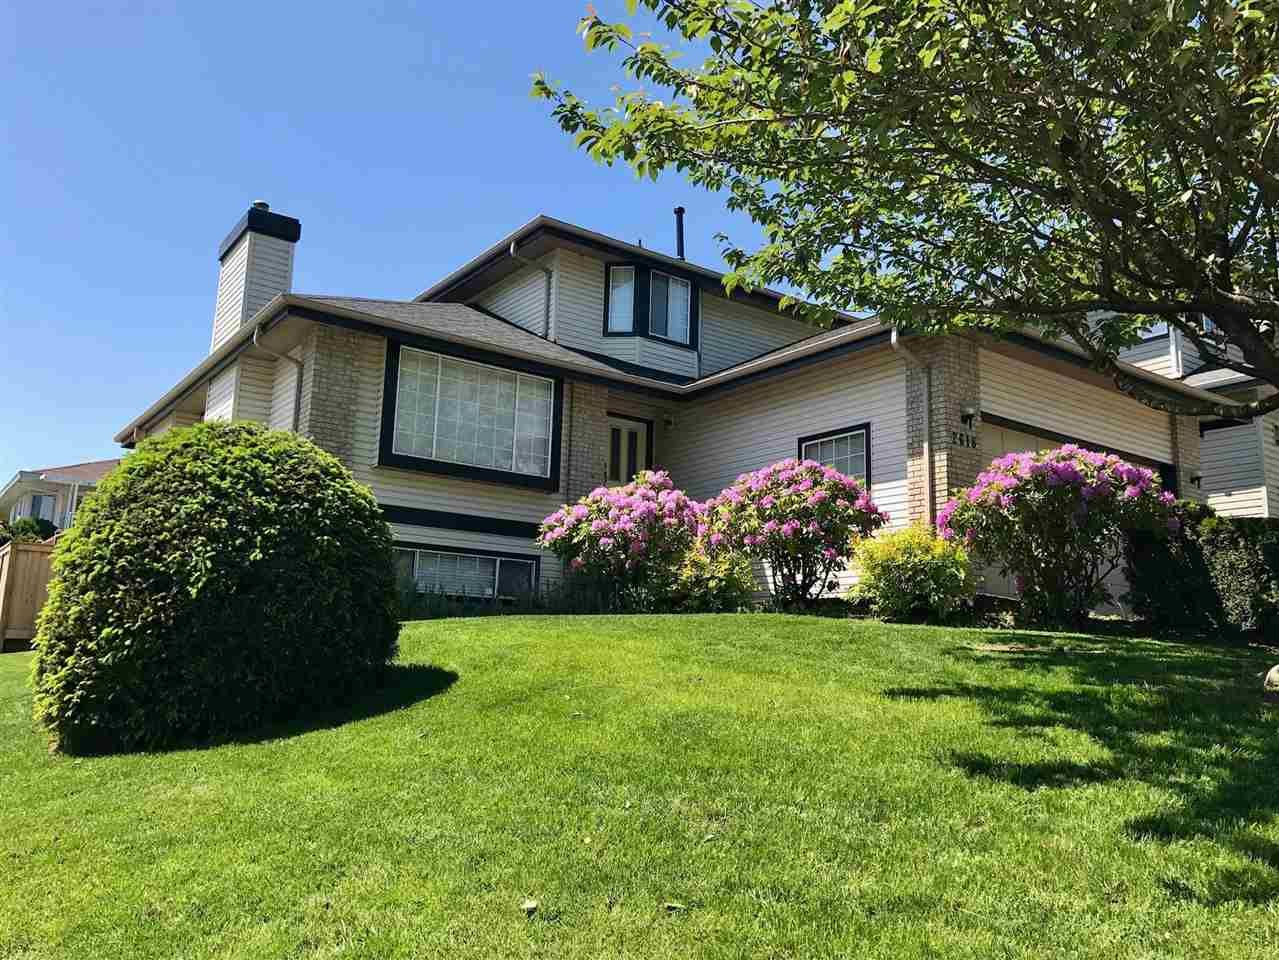 Main Photo: 2618 FORTRESS DRIVE in Port Coquitlam: Citadel PQ House for sale : MLS®# R2171800